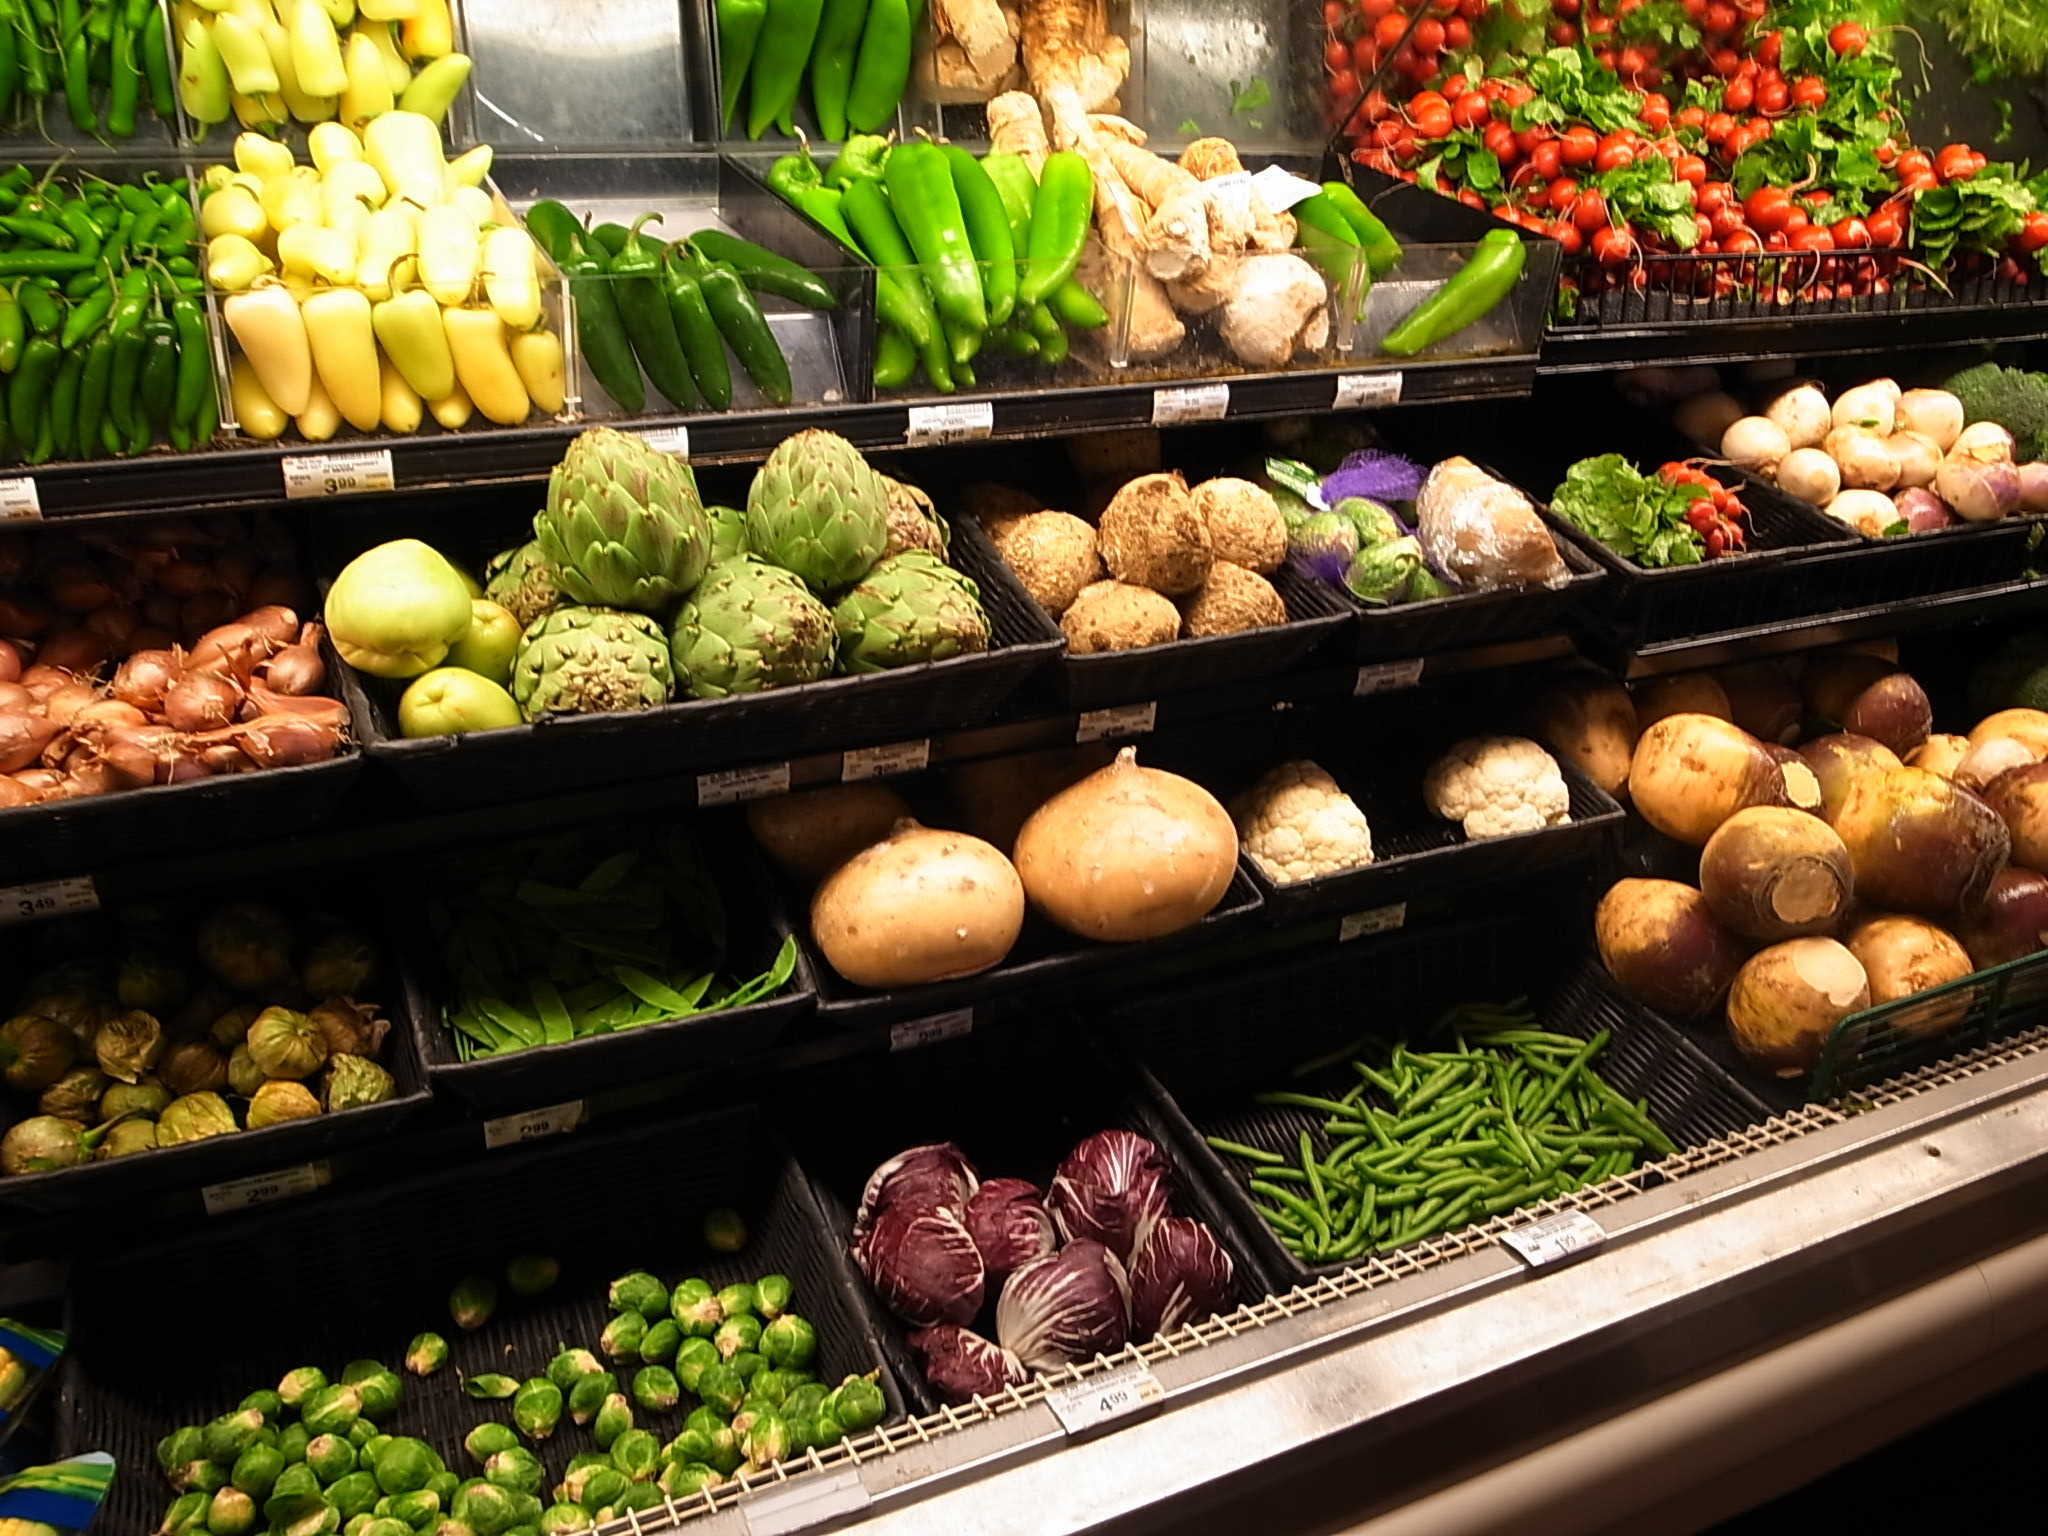 The food subgroup prices decelerated to 3.4 percent from the previous month's 3.6 percent. This is due to slower price adjustments in fruits, vegetables, meat, corn, sugar, jam, honey, chocolate and confectionery. (Photo: Lisa Pinehill/ Facebook)